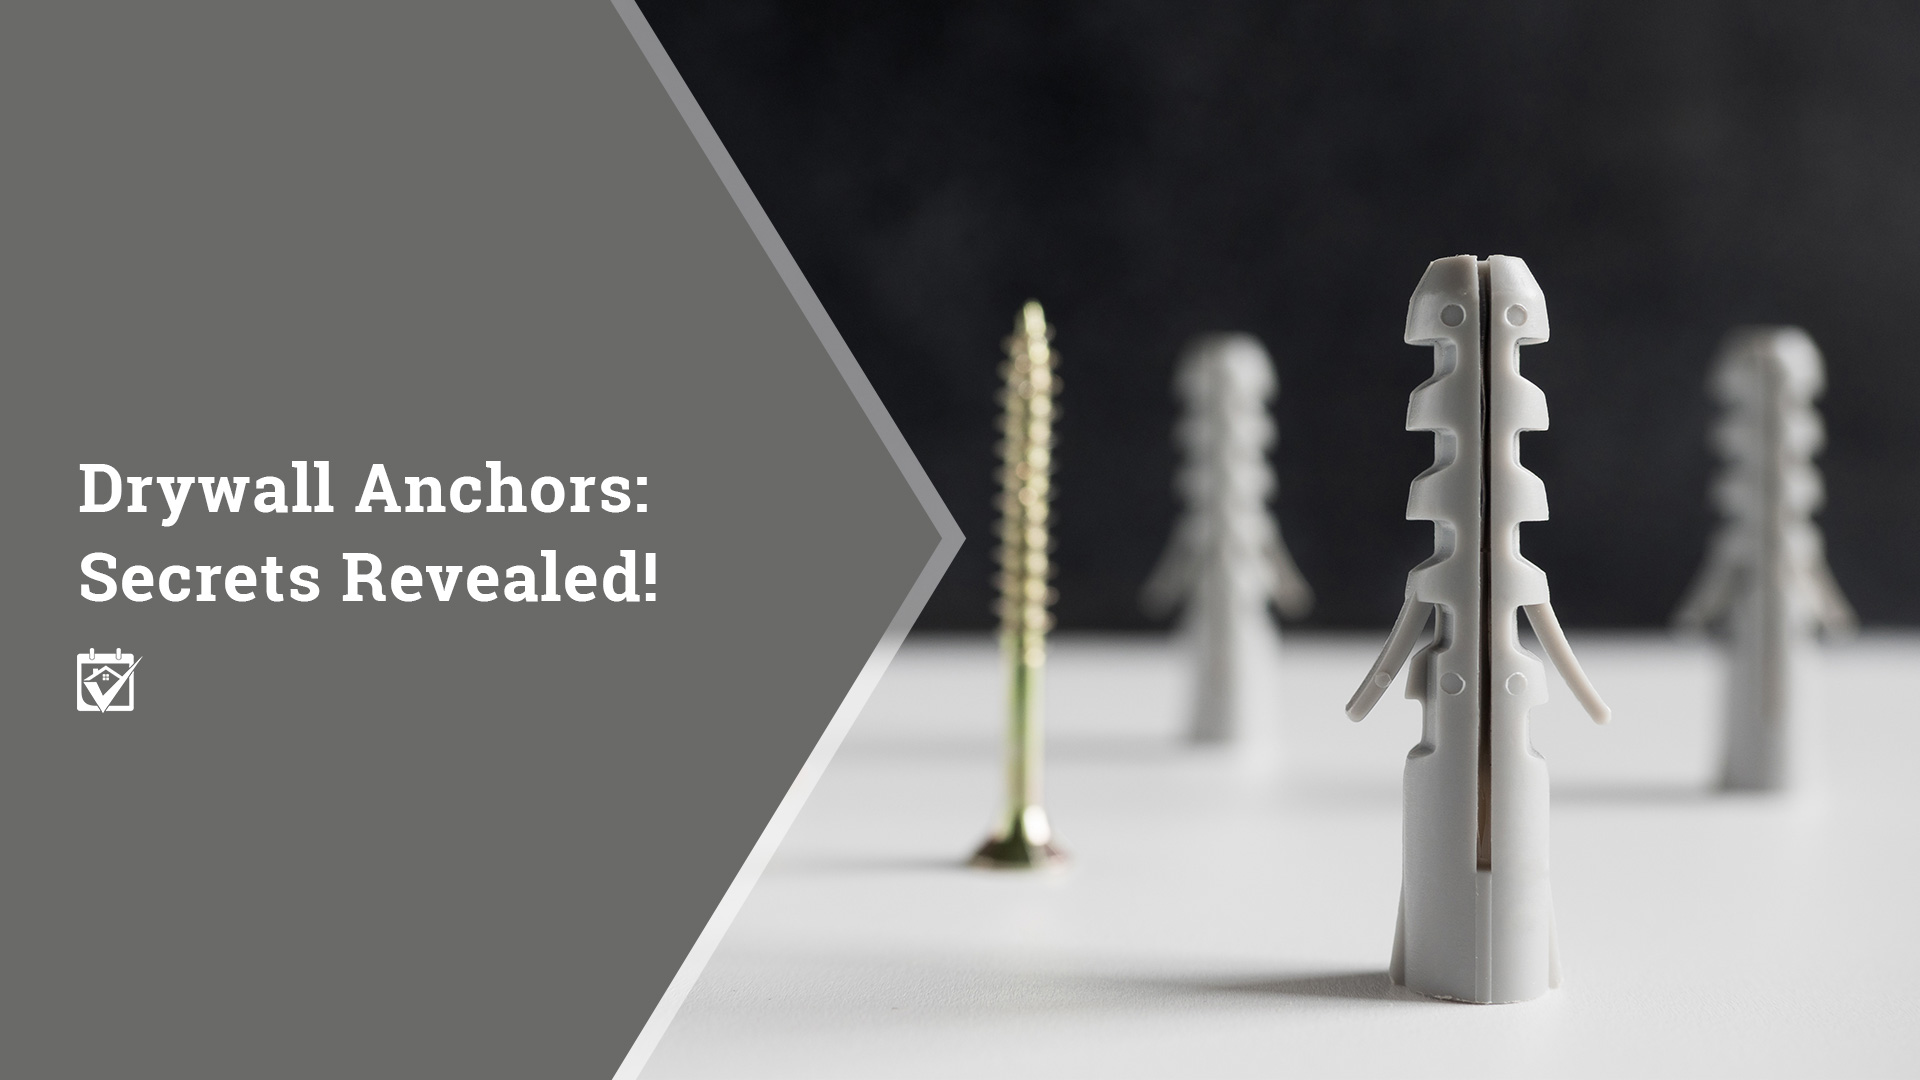 Drywall Anchors: Secrets Revealed!